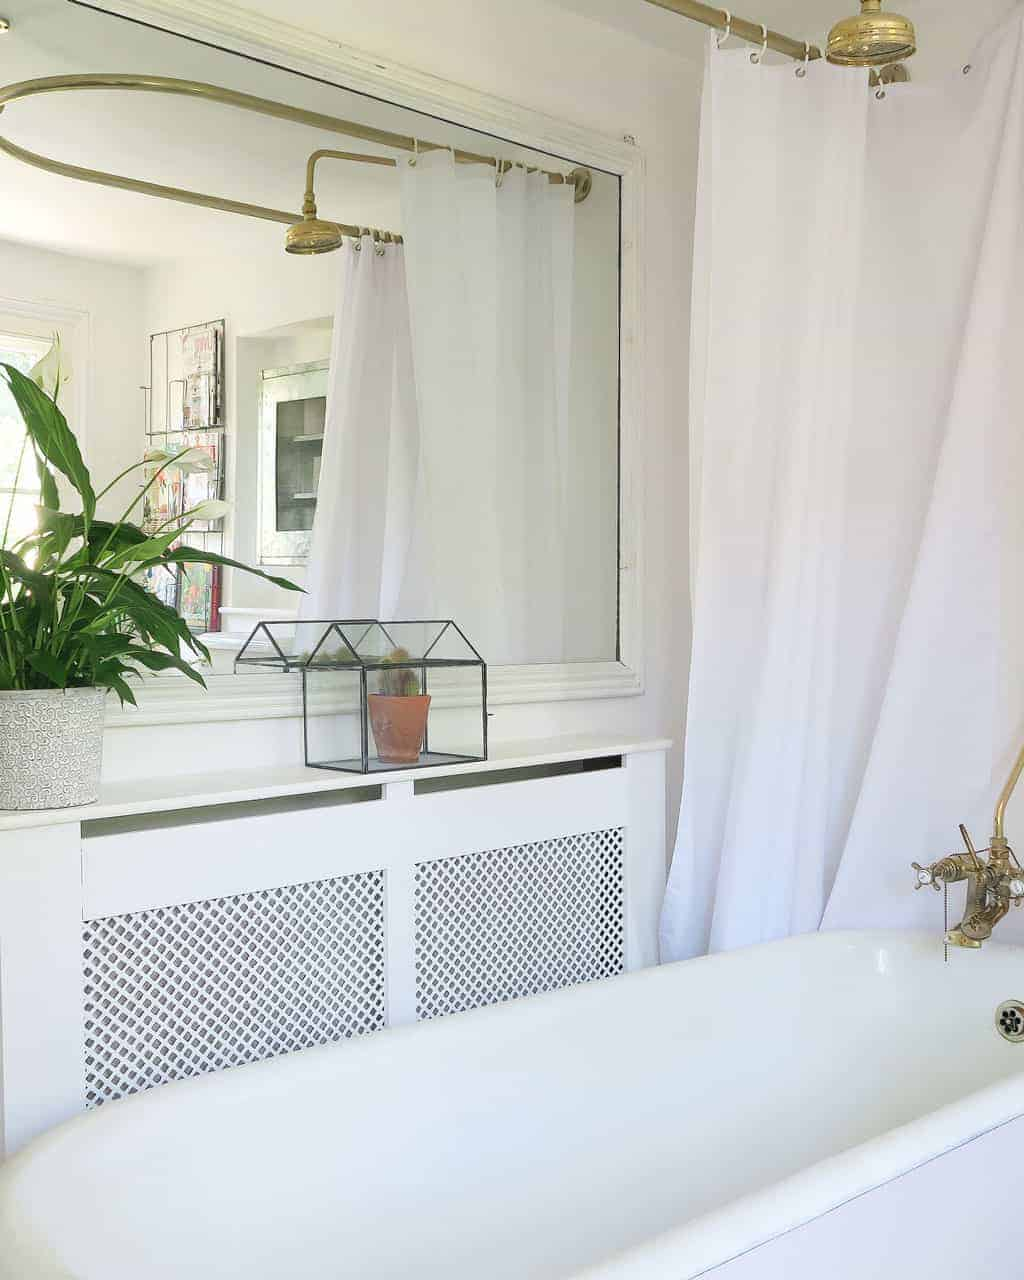 5 tips for a simple bathroom makeover — mirrors are a great way of doubling your space